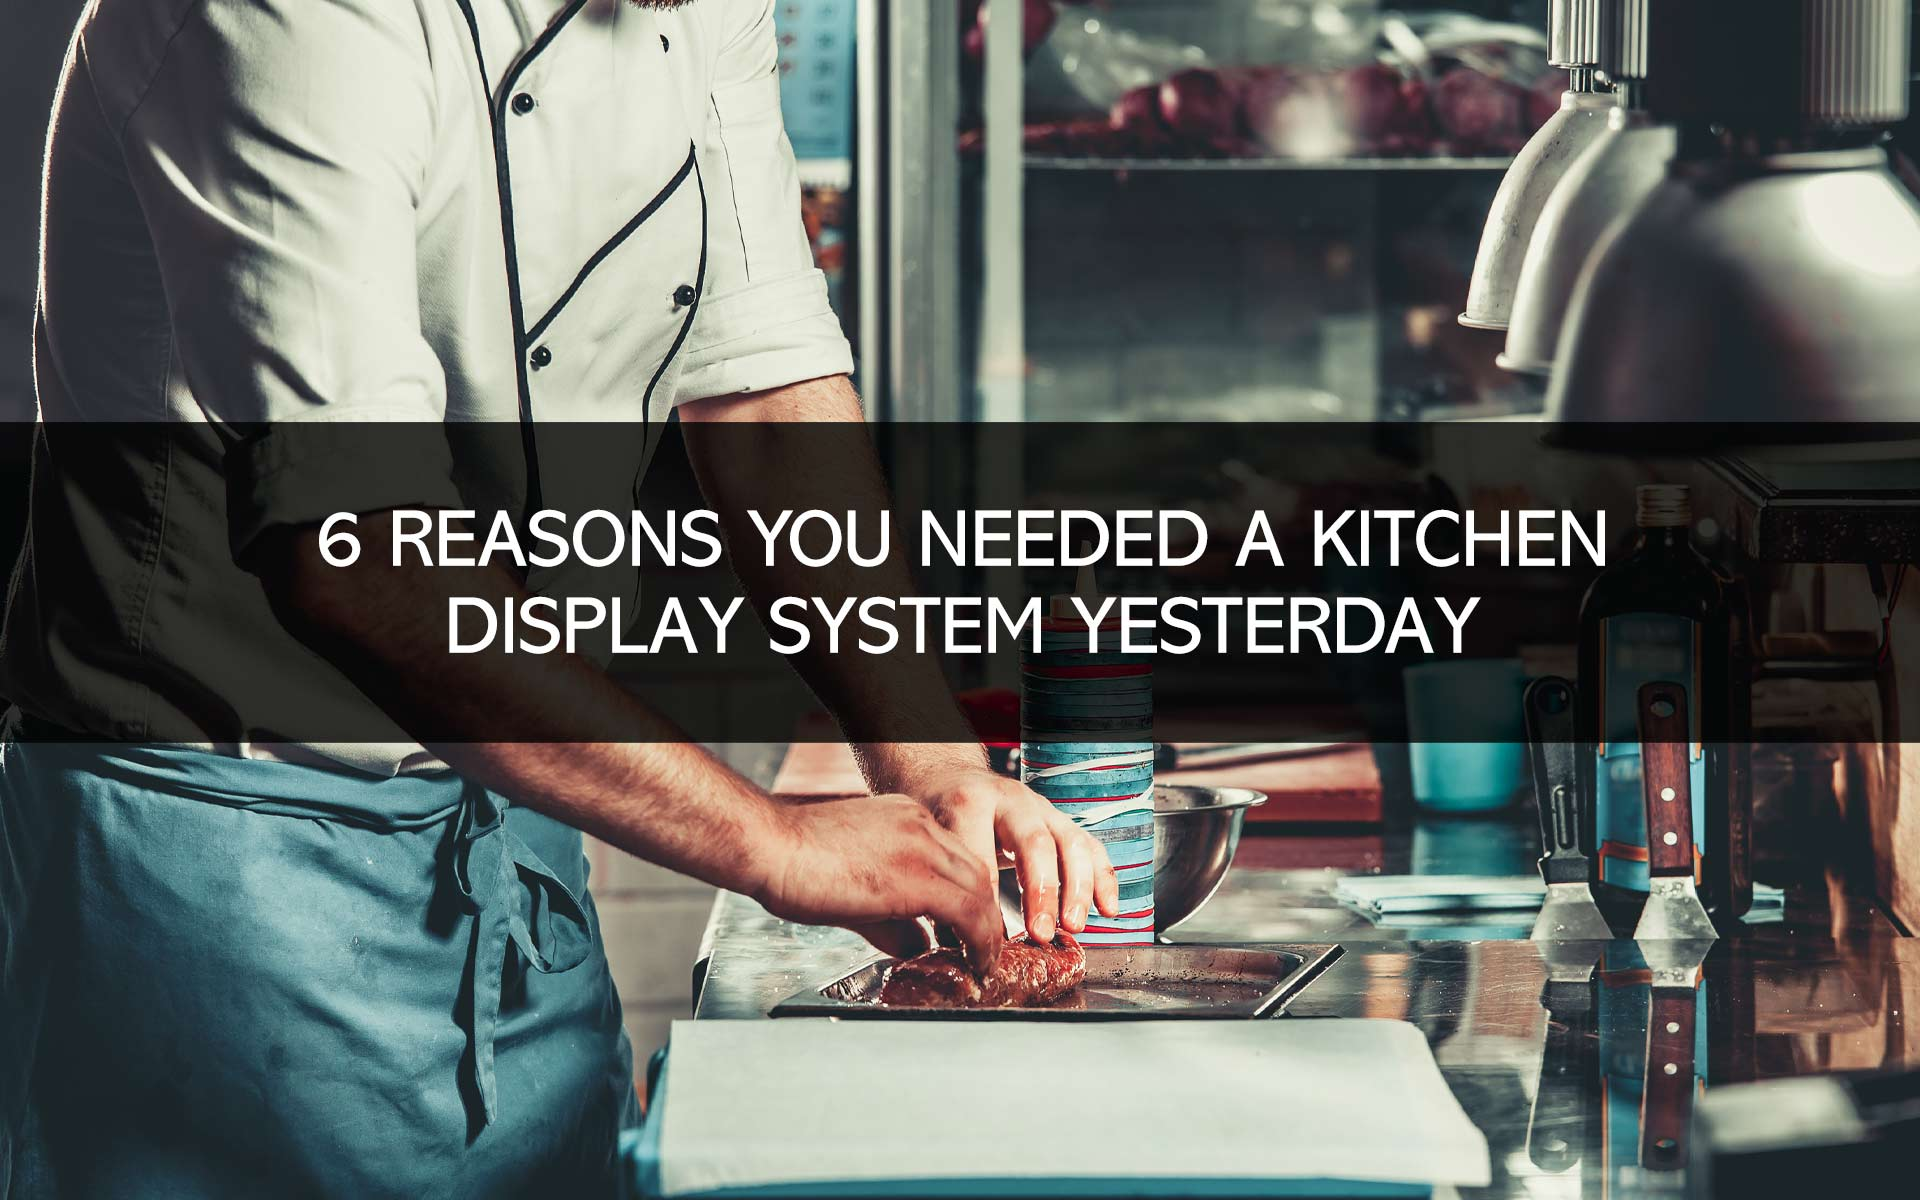 6 Reasons You Needed A Kitchen Display System Yesterday